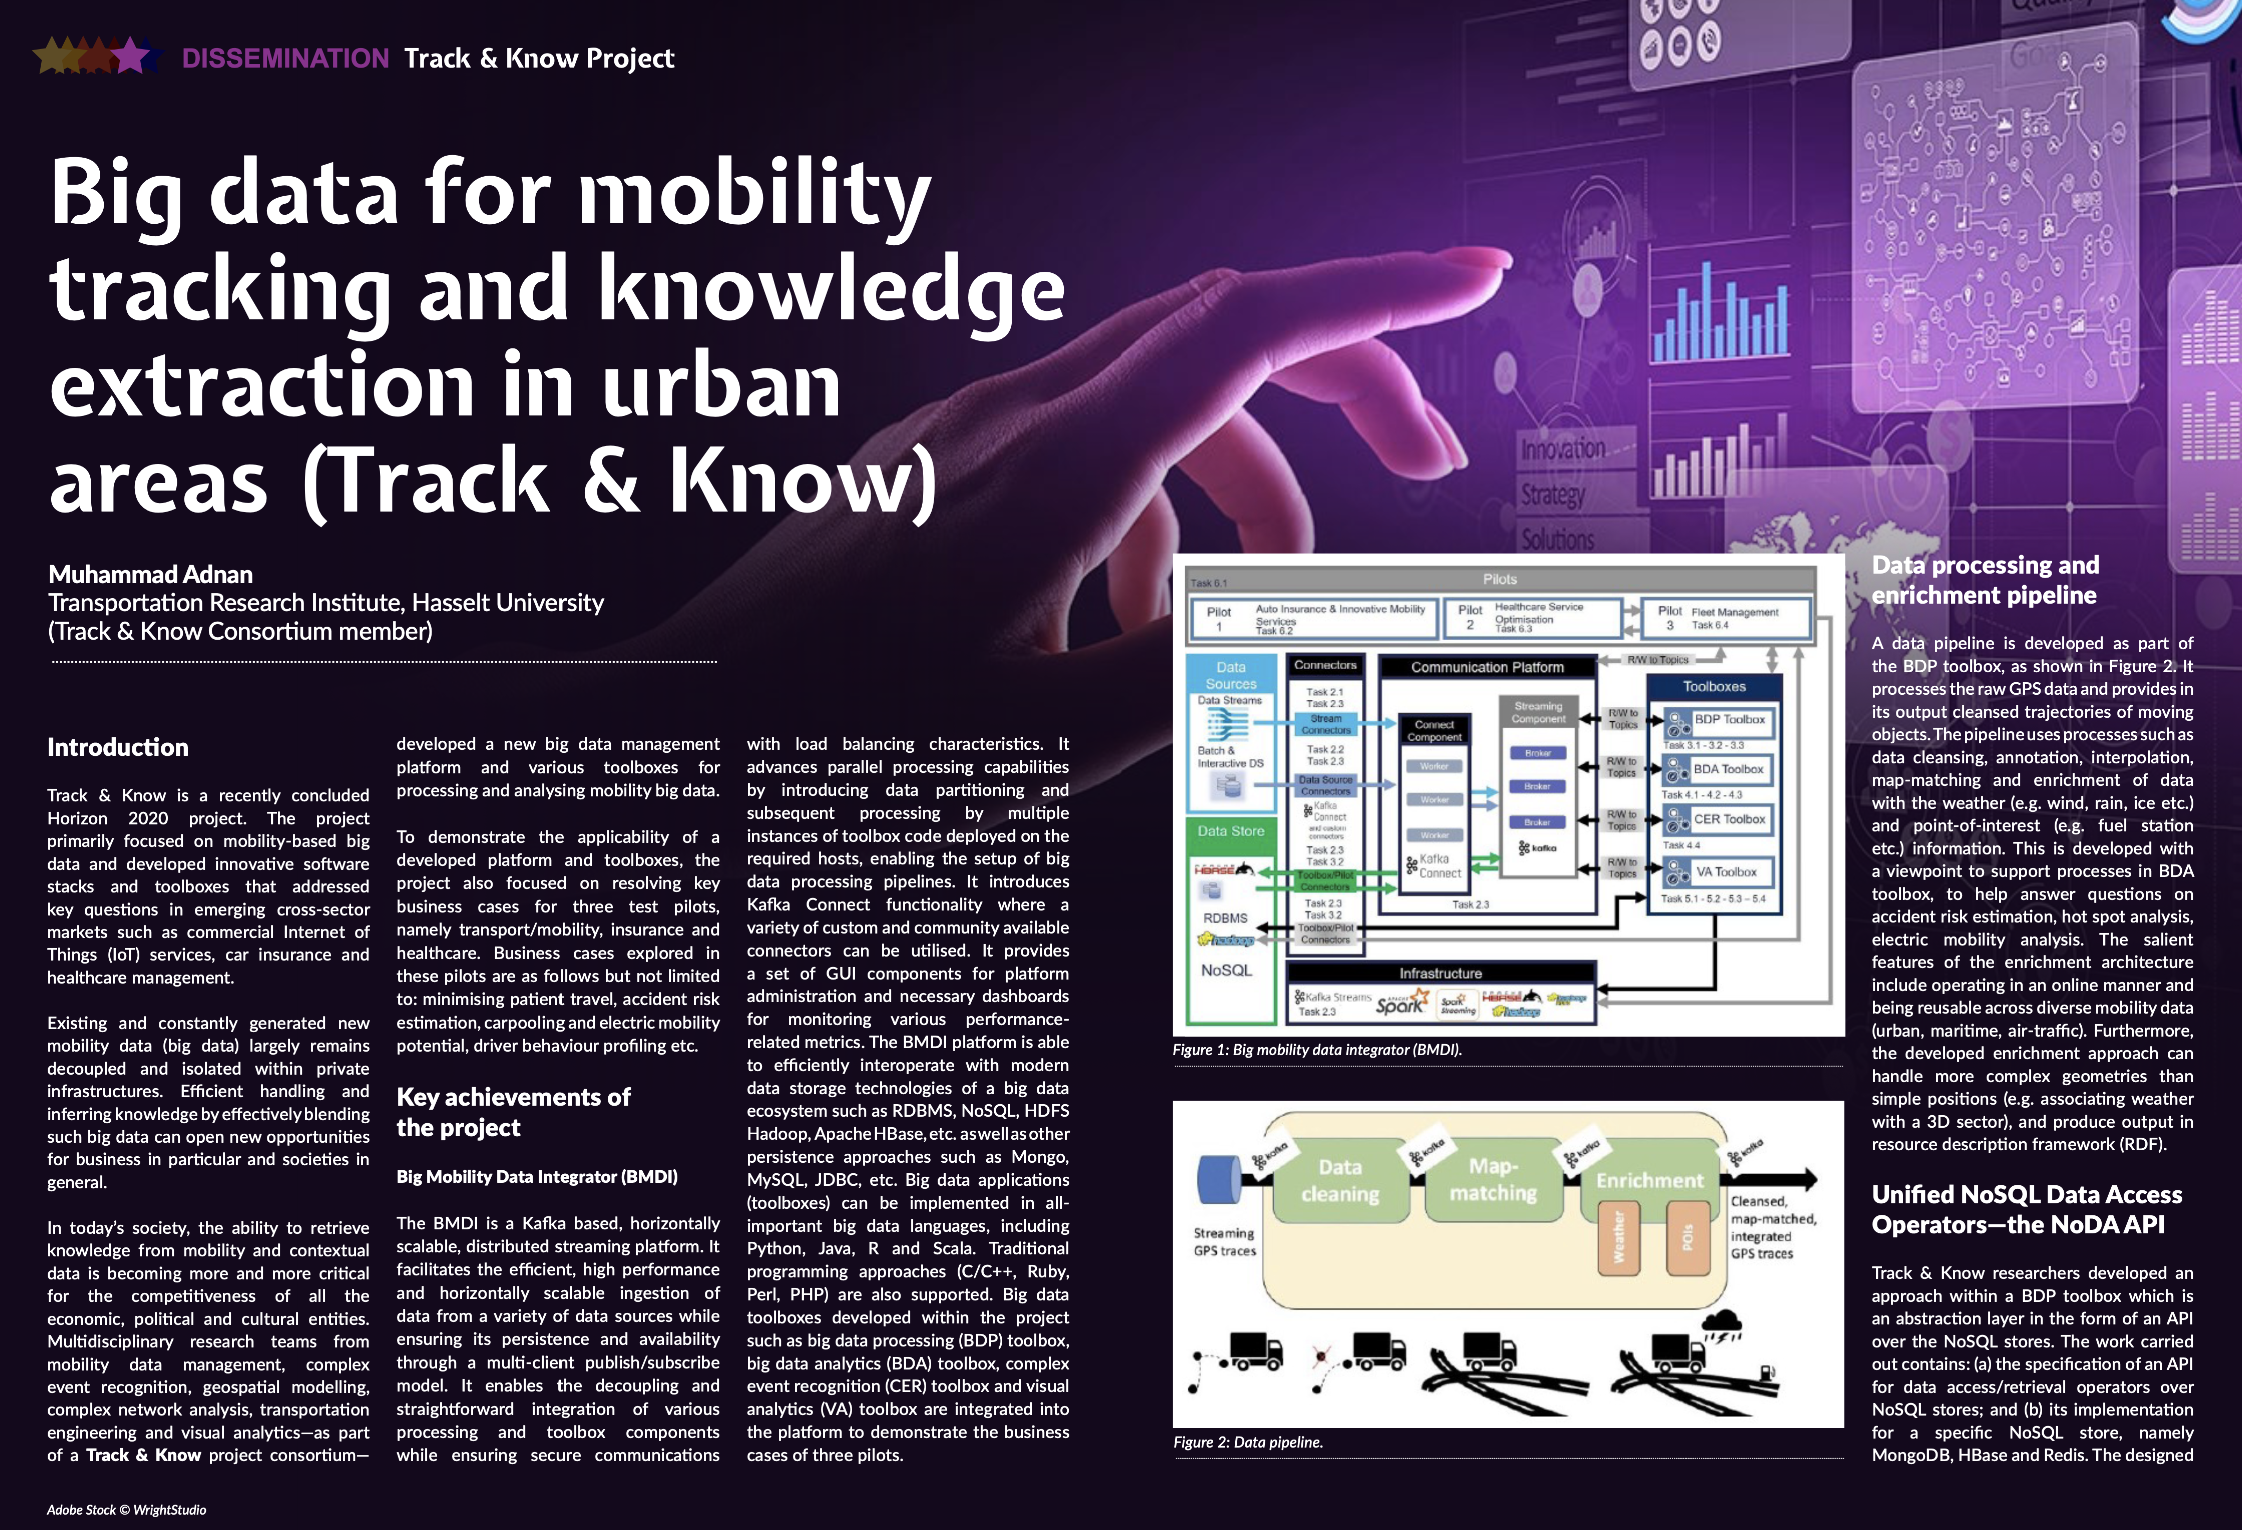 Big data for mobility tracking and knowledge extraction in urban areas (Track & Know)